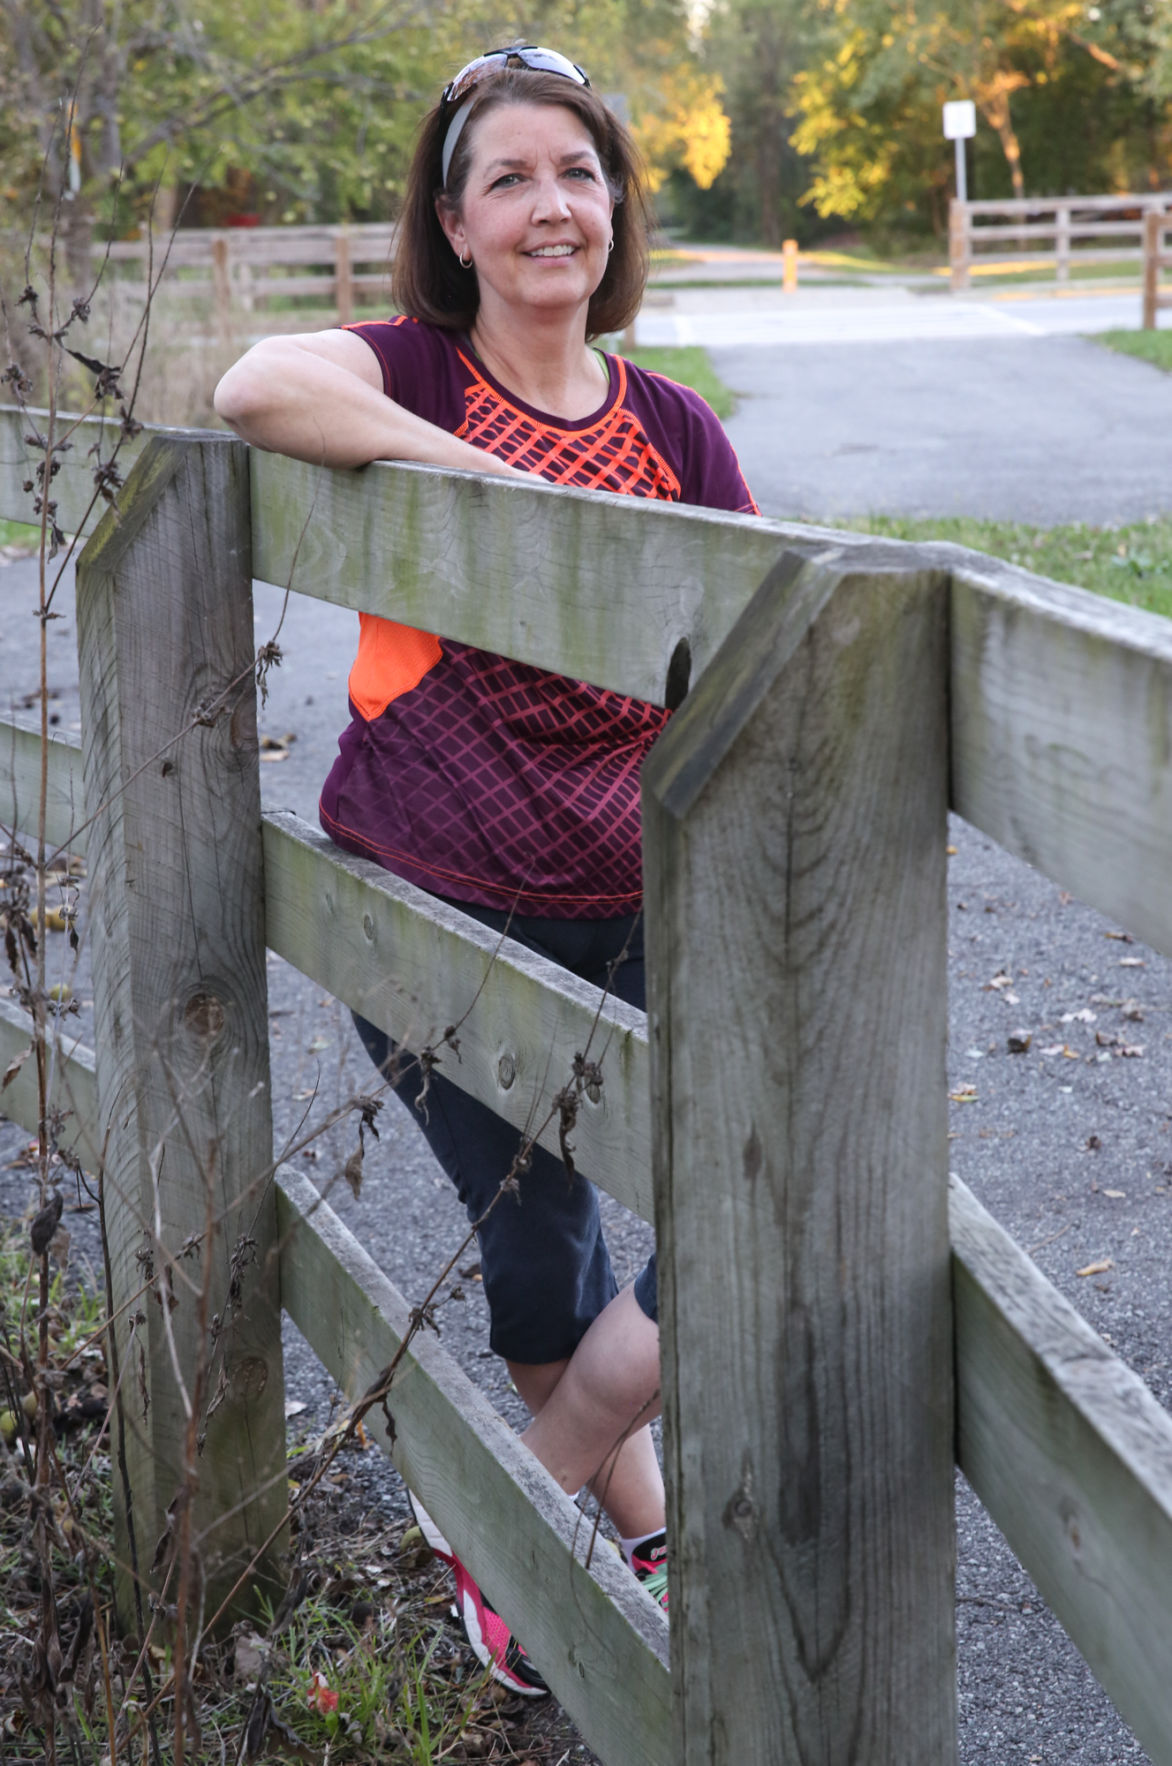 Barb Coggins, a contestant in The Times' Lose 17 in '17 contestants, recently got back into running by participating in 5Ks.